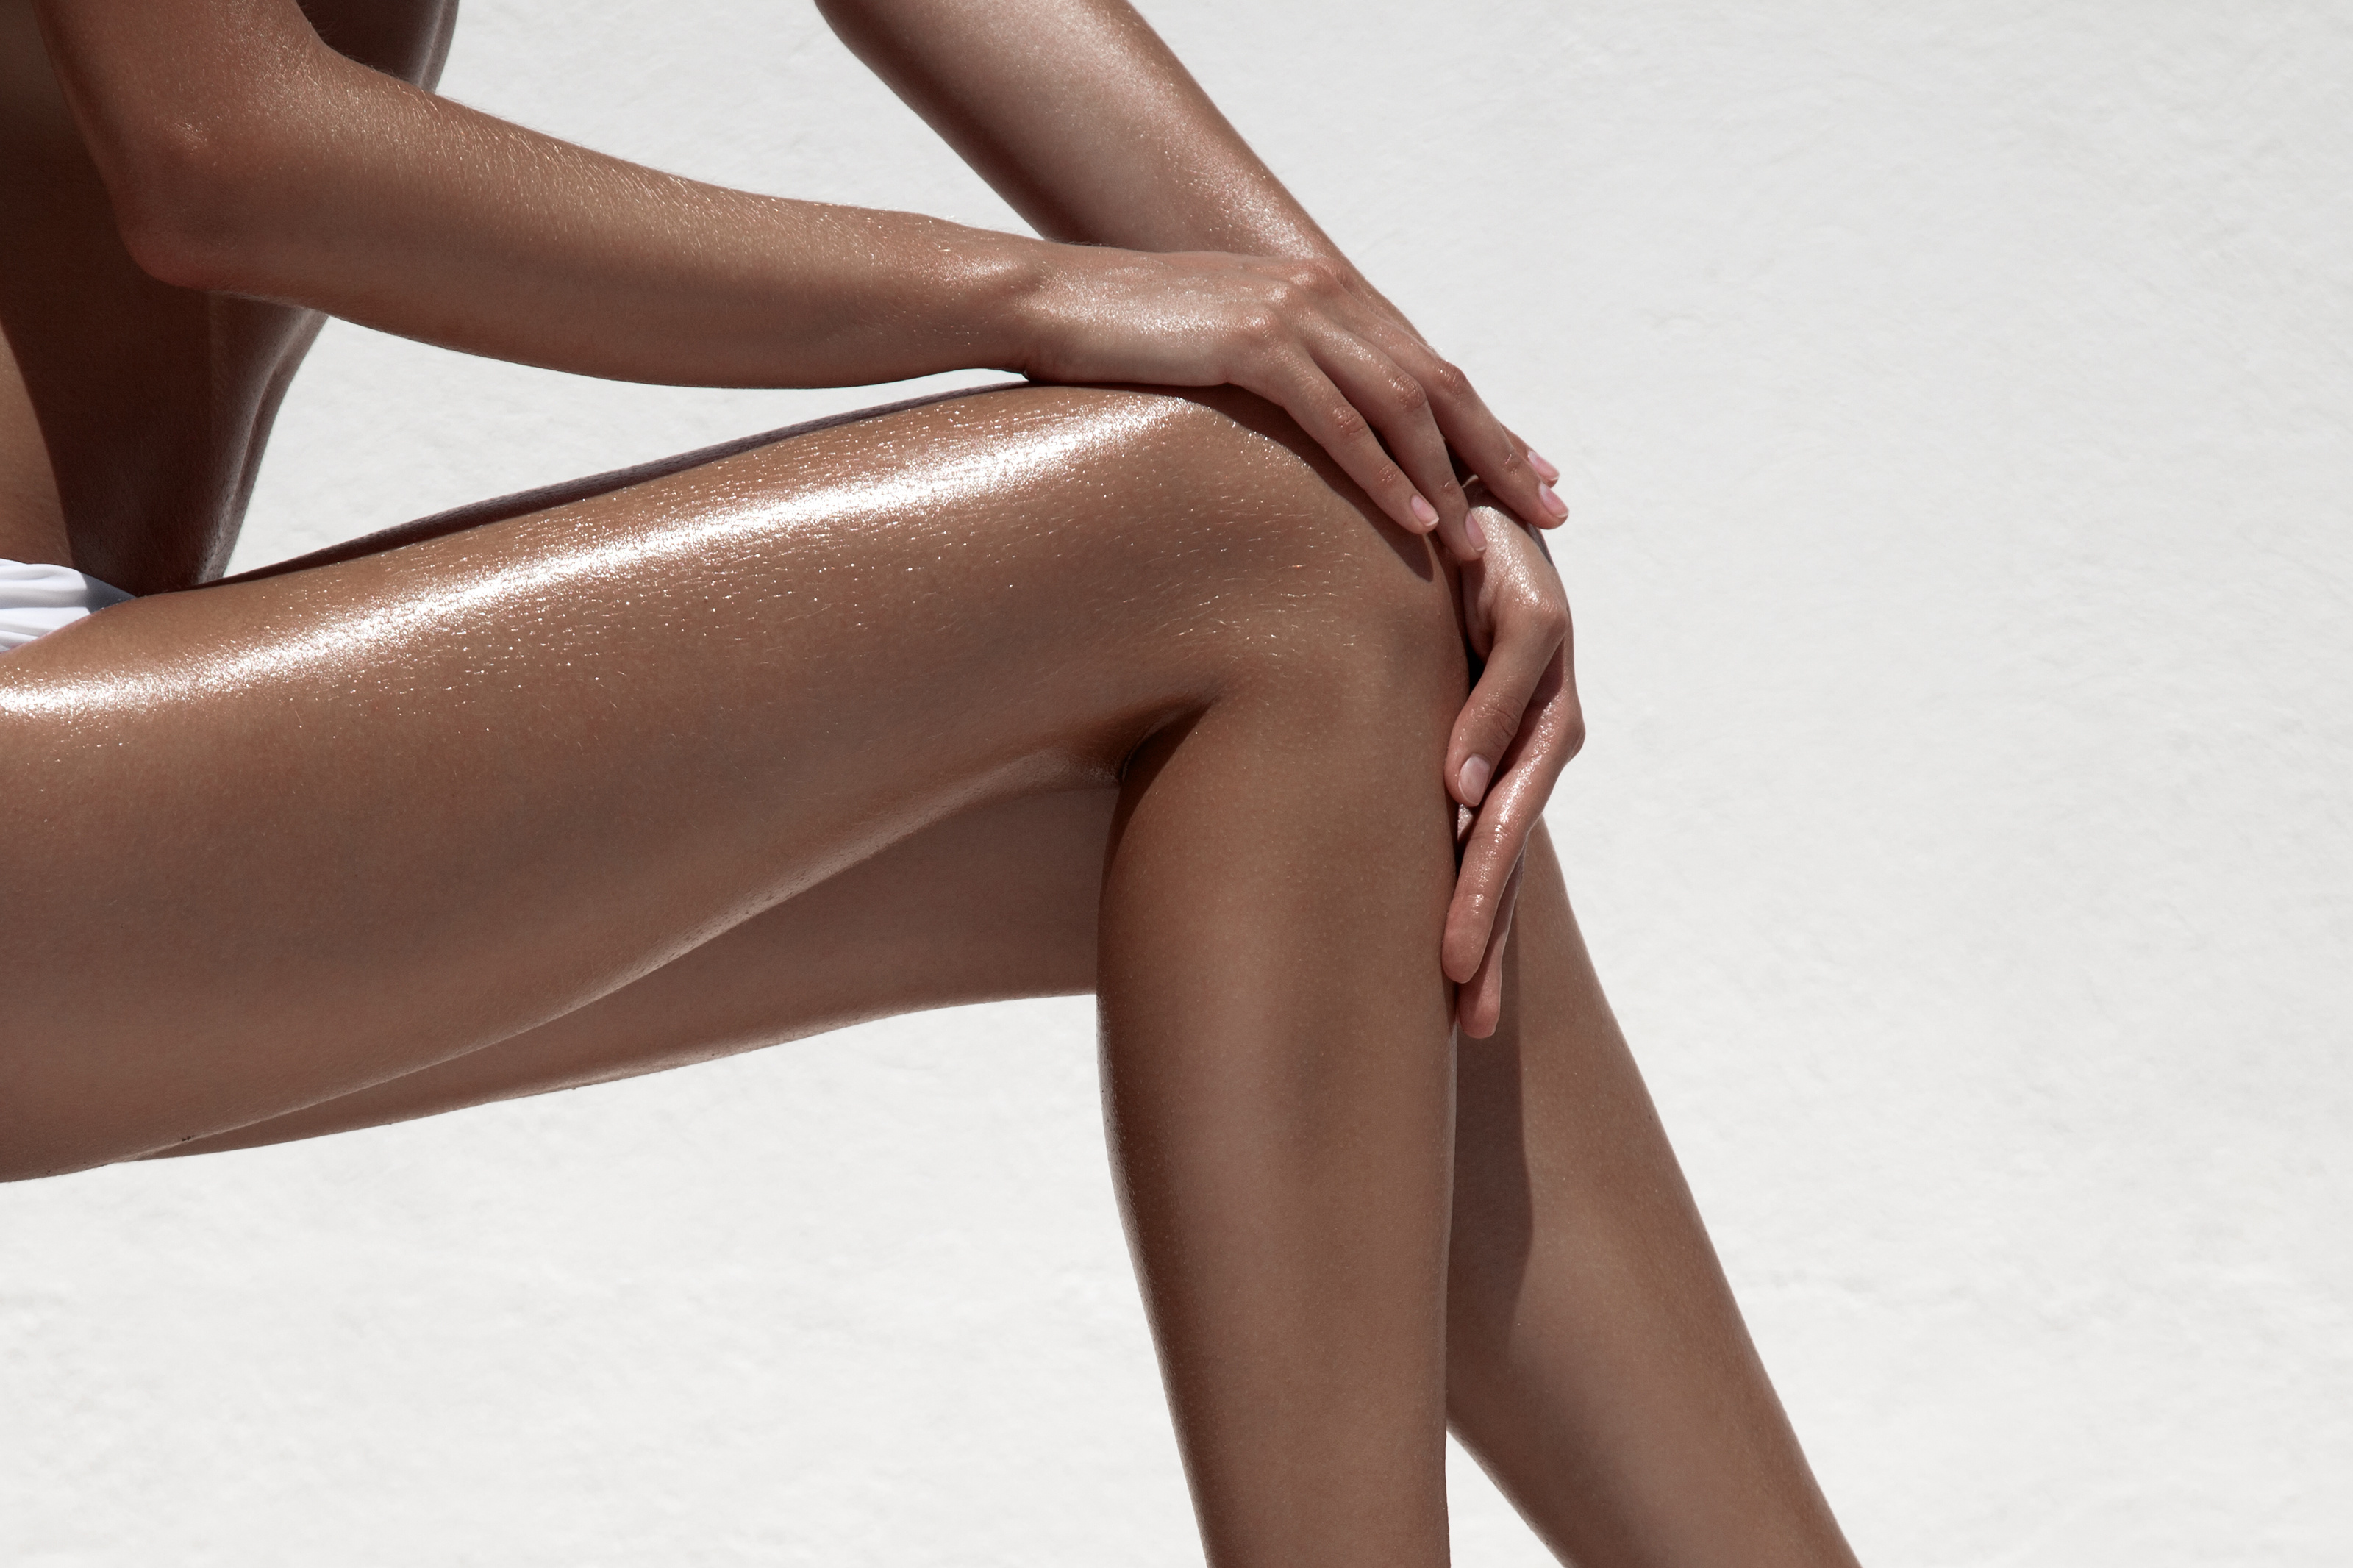 How to - Self Tanning Routine